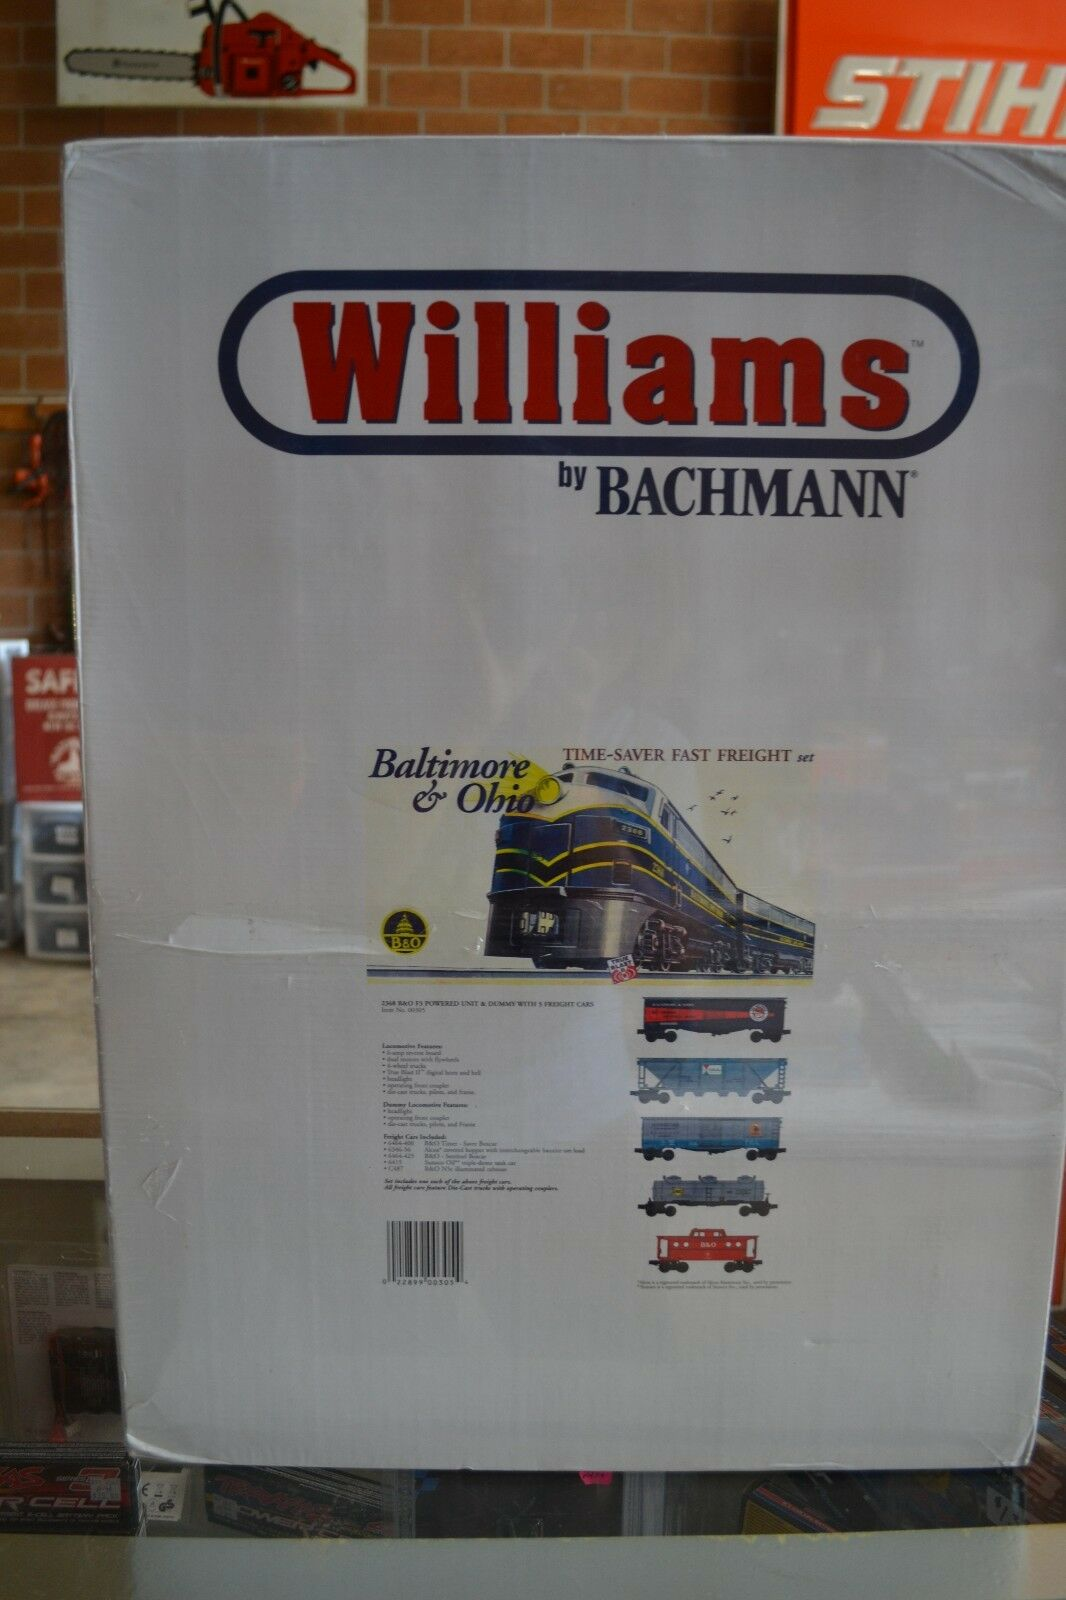 Williams by Bachmann 00305 00305 00305 B&O Time Saver Fast Freight Train Set - NIB d68cb0